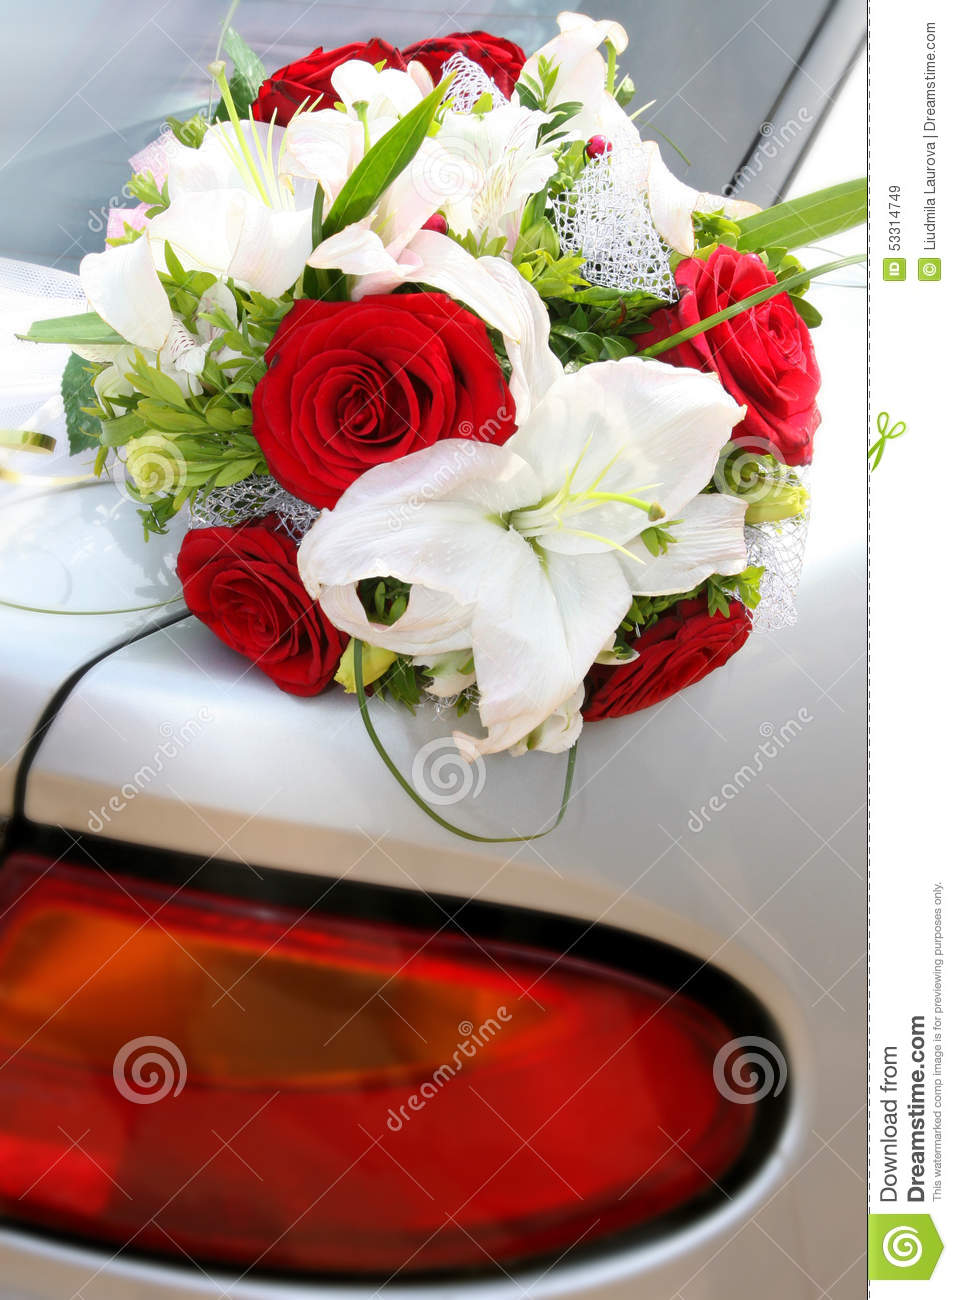 Wedding Bouquet Of Red Roses And White Lilies Stock Image Image Of